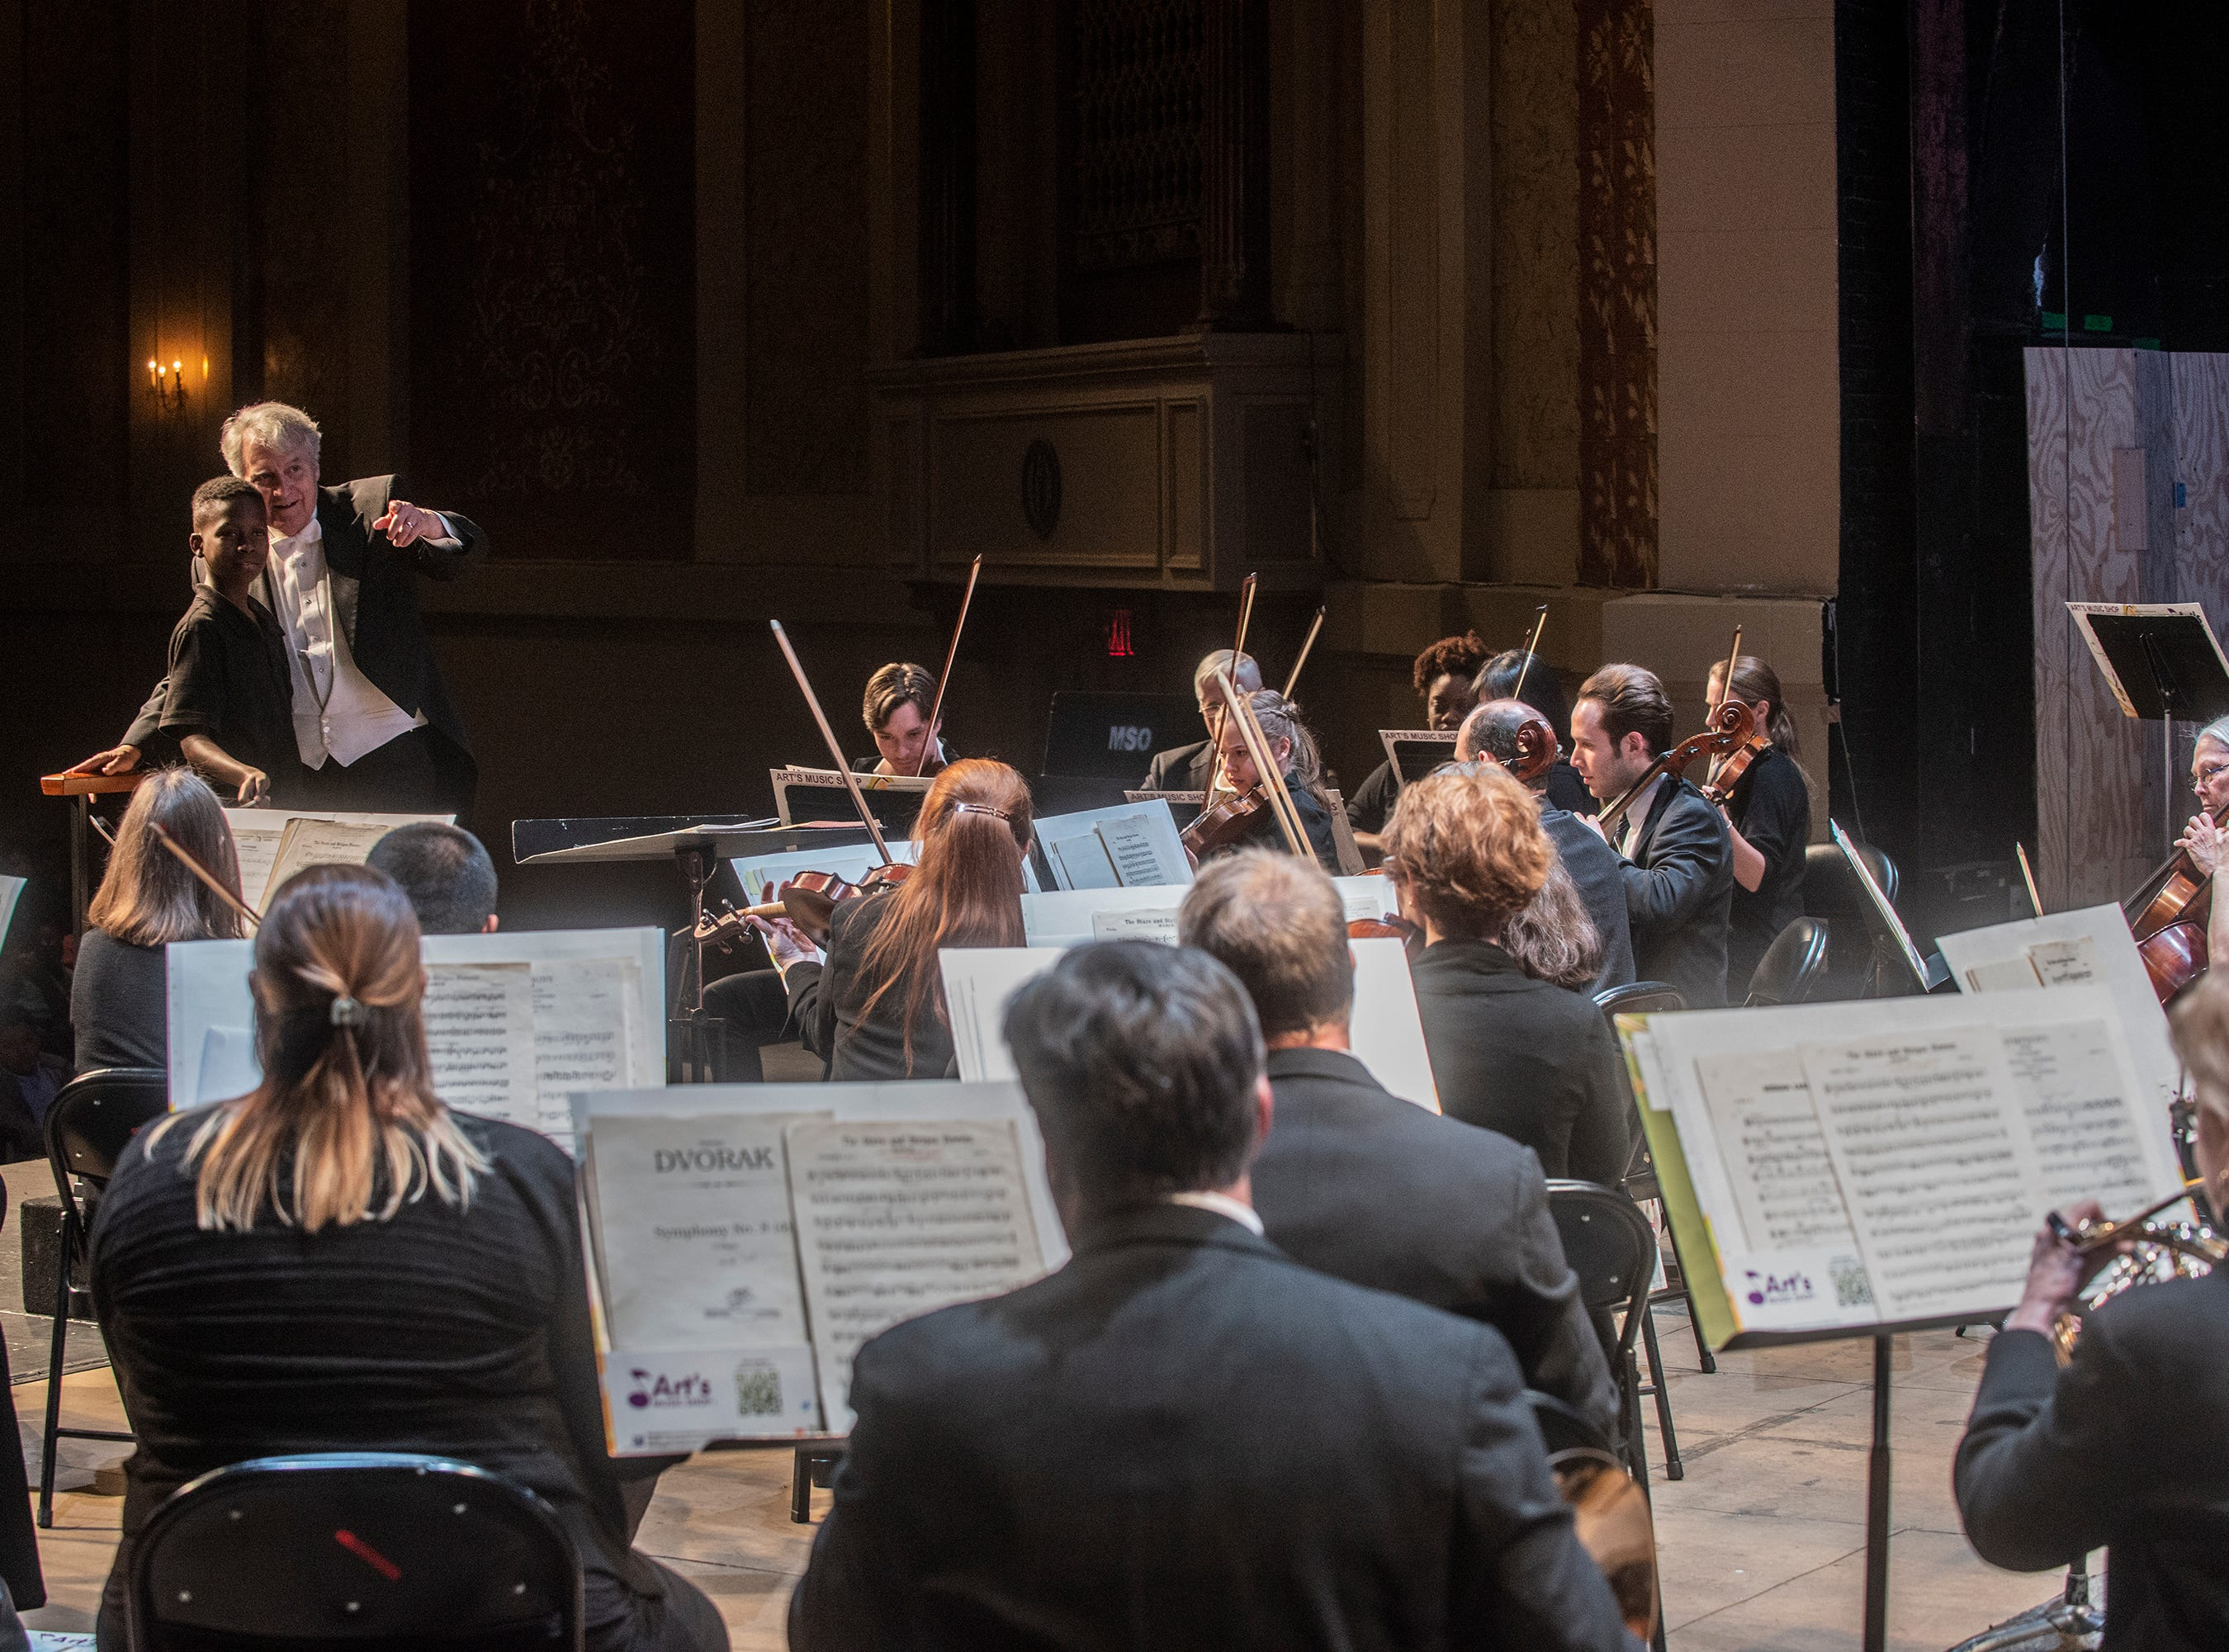 On Thursday, March 7, 2019, the Montgomery Symphony Orchestra performed two free concerts at the Davis Theatre for area 6th grade students. Maestro Thomas Hinds invites a student from each school to come to the stage to try the role of conductor.